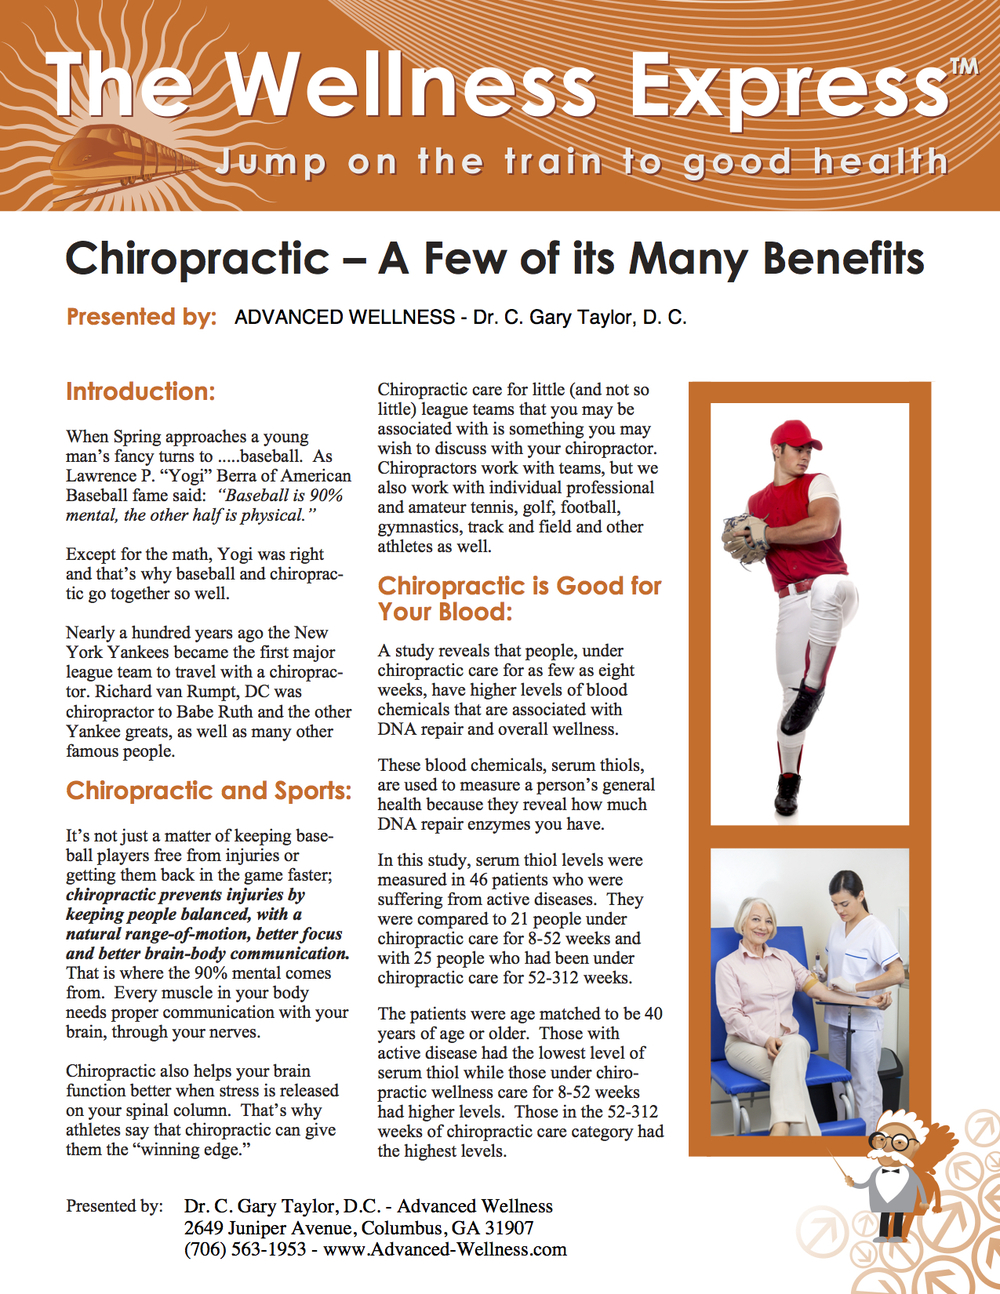 Weekly Newsletter: Chiropractic – A Few of Its Many Benefits